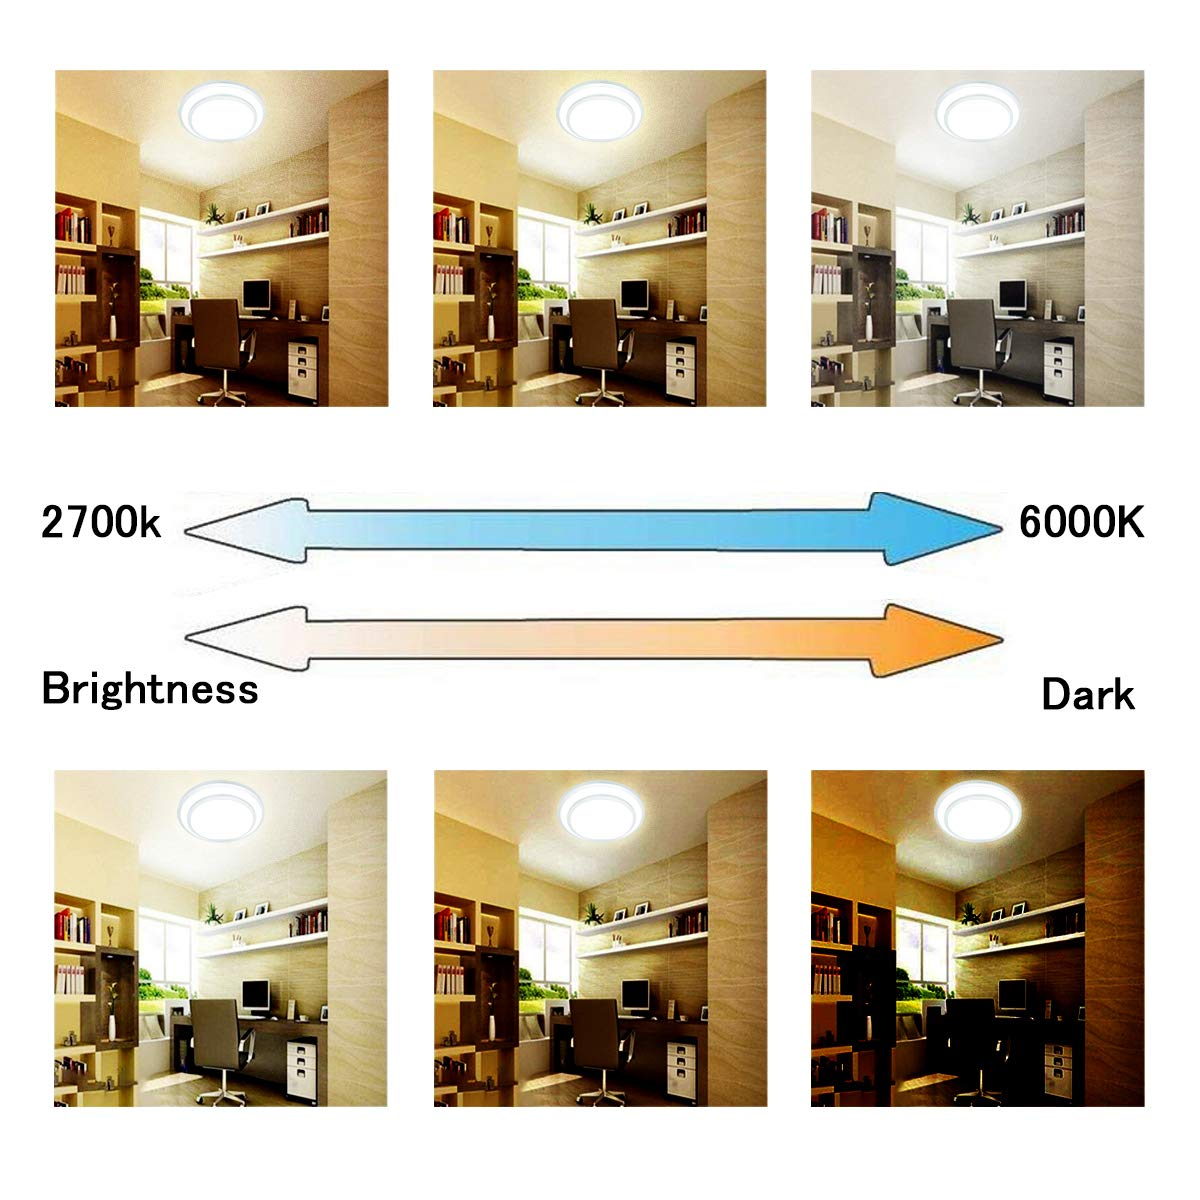 DLLT 48W Dimmable Led Flush Mount Ceiling Light Lighting with Remote-20 Inch Close to Ceiling Lights Fixture for Bedroom/Living Room/Dining Room, 3000K-6000K Color Changeable by DINGLILIGHTING (Image #6)